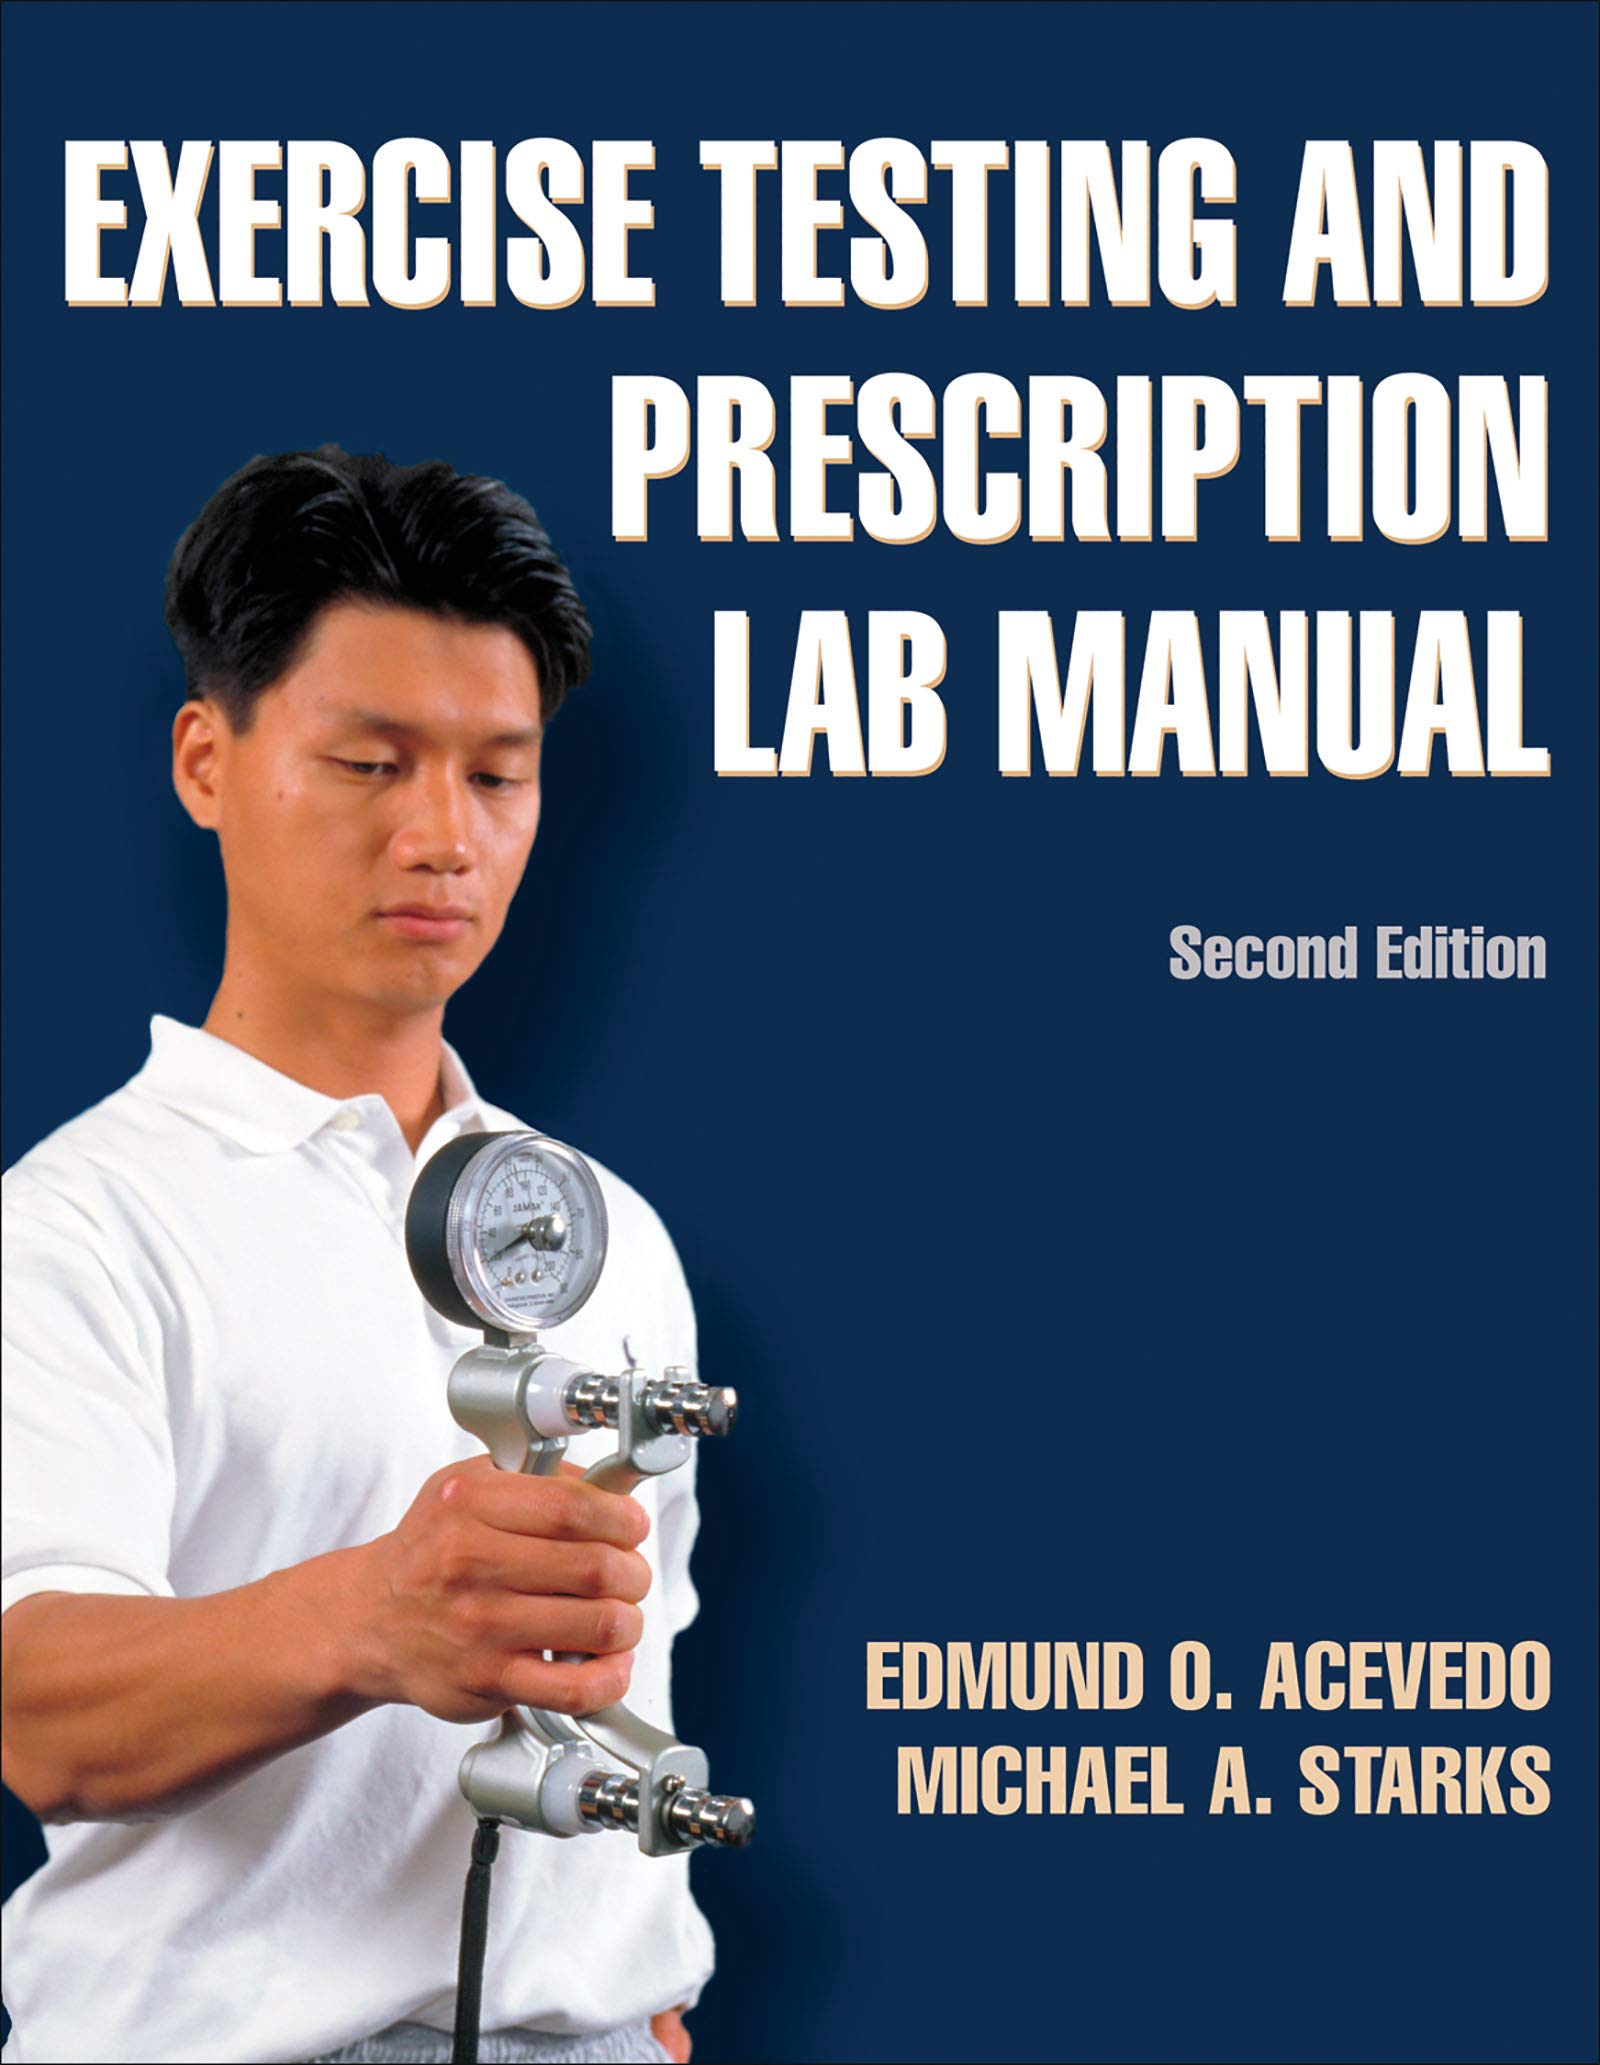 Exercise Testing and Prescription Lab Manual-2nd Edition: Edmund Acevedo,  Michael Starks: 9780736087285: Sports Medicine: Amazon Canada